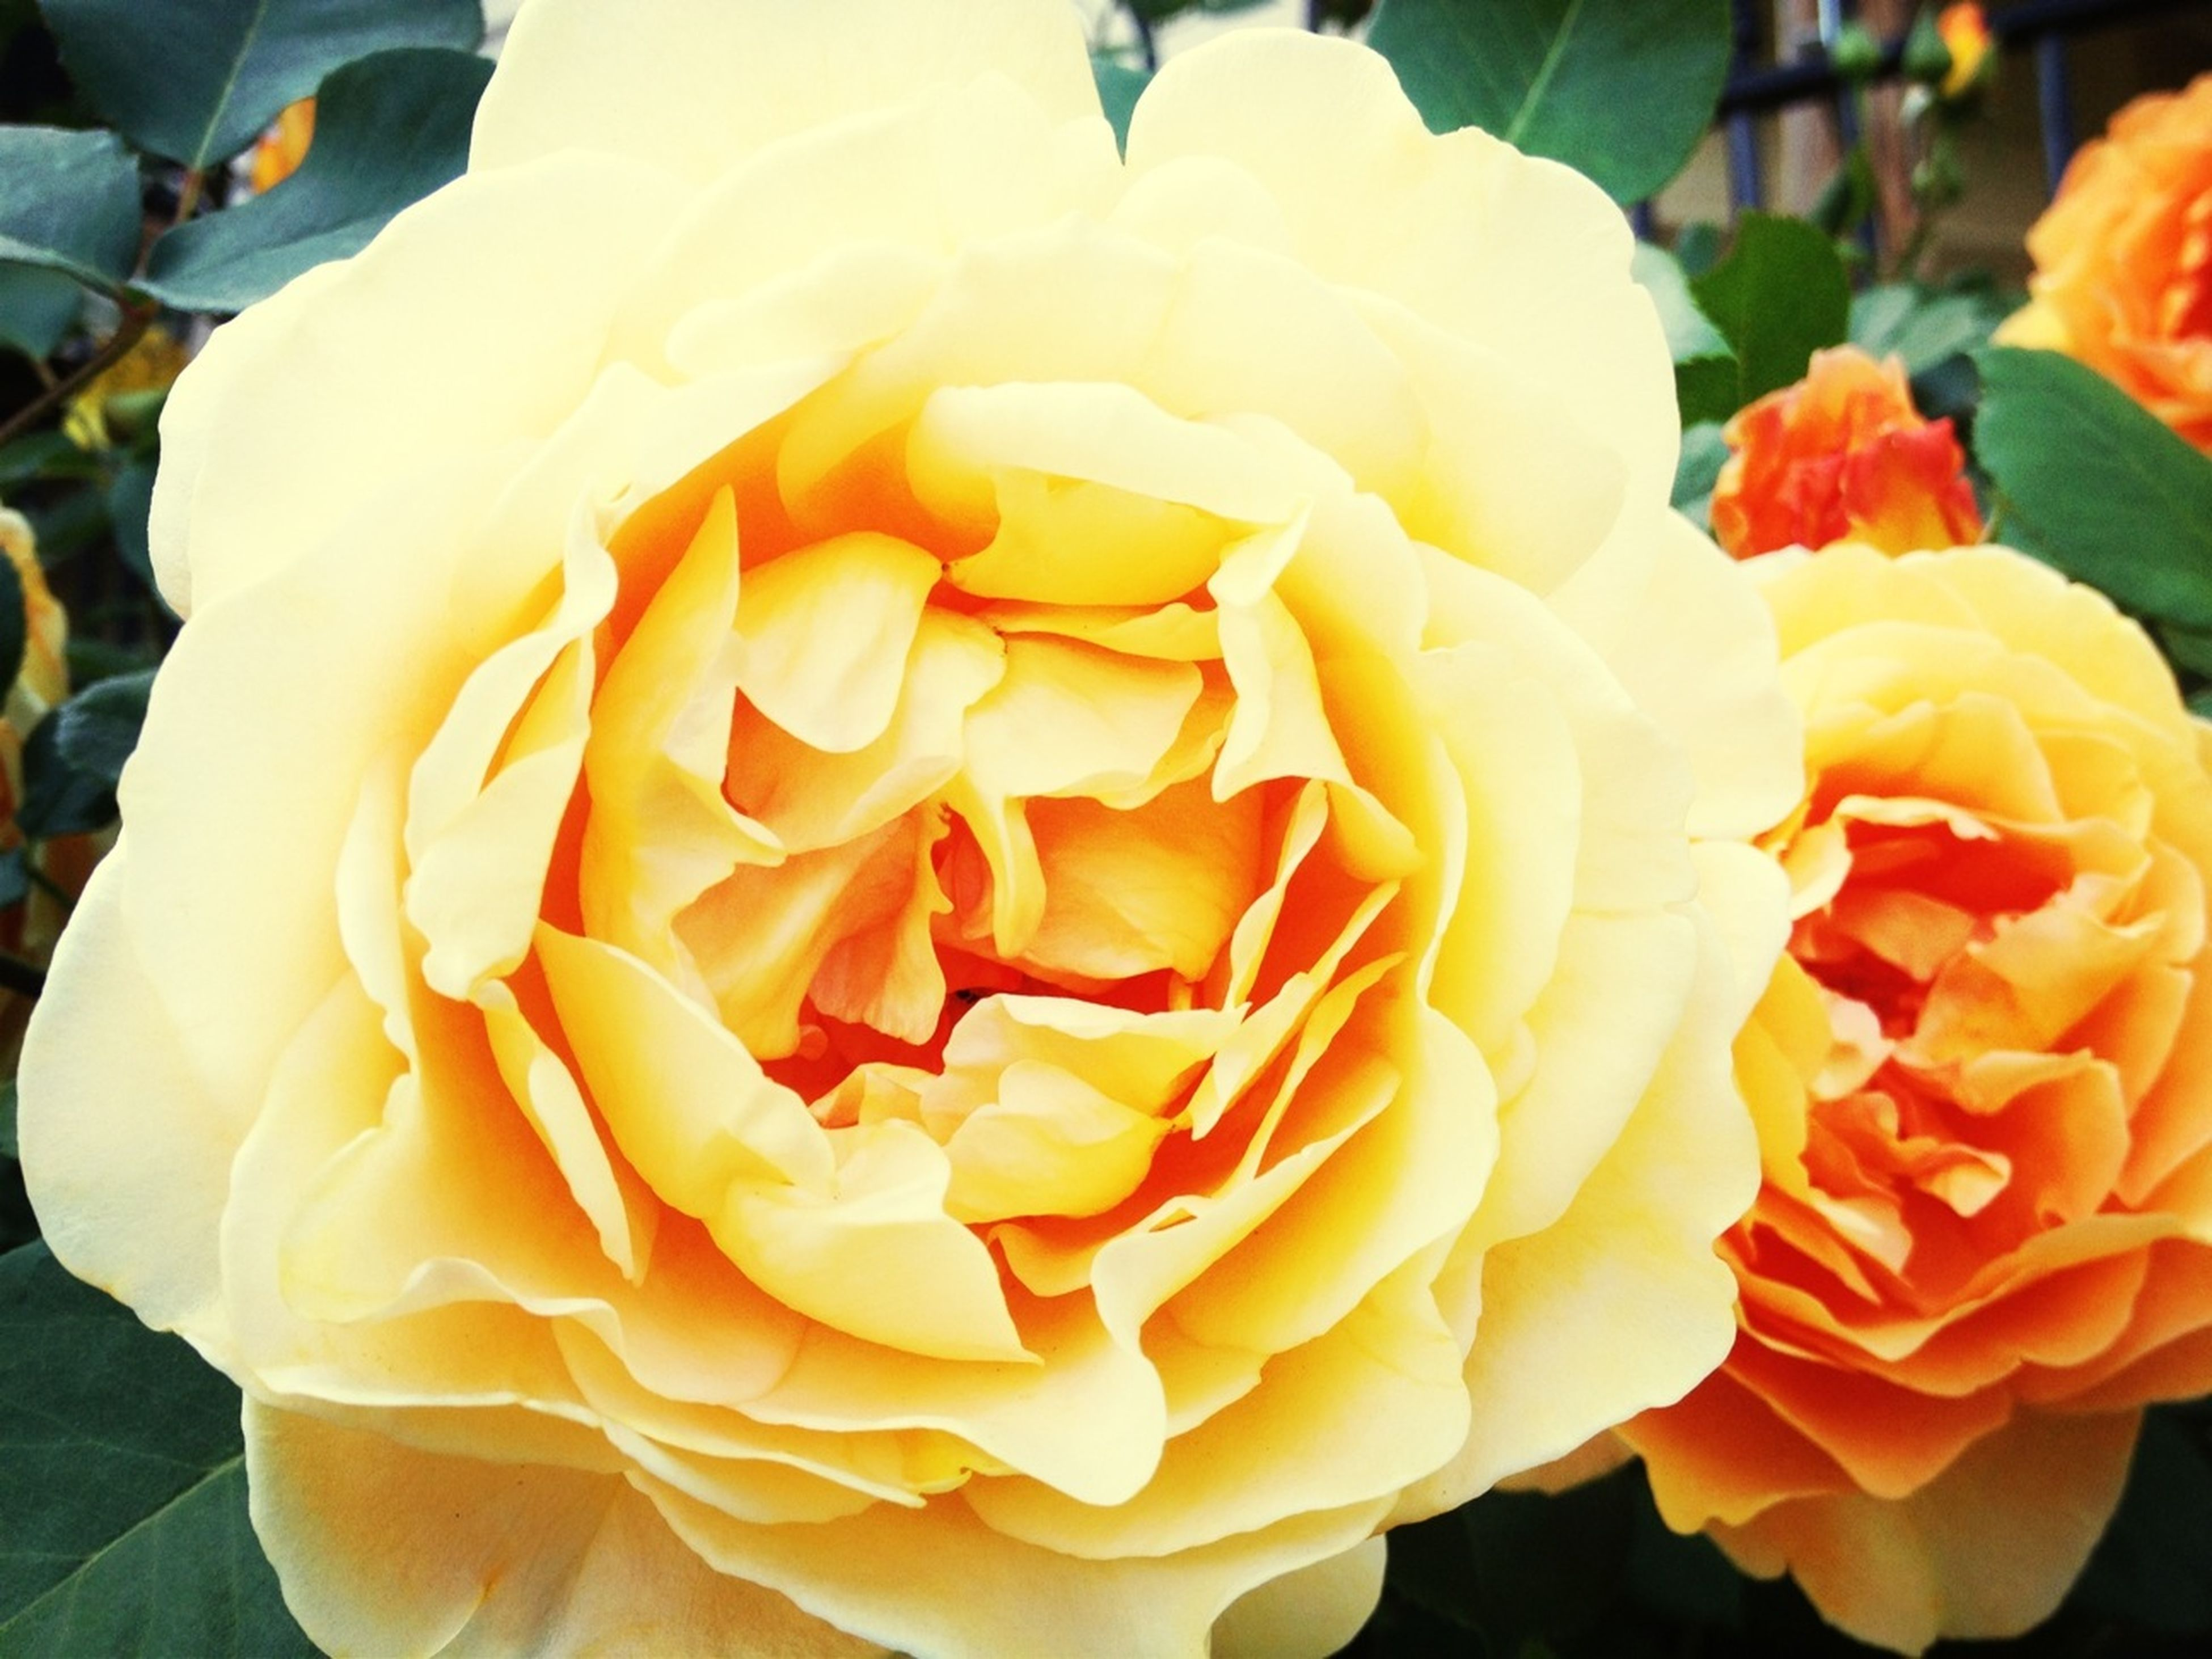 flower, petal, flower head, freshness, rose - flower, fragility, beauty in nature, close-up, blooming, growth, rose, nature, single flower, yellow, in bloom, focus on foreground, plant, single rose, orange color, no people